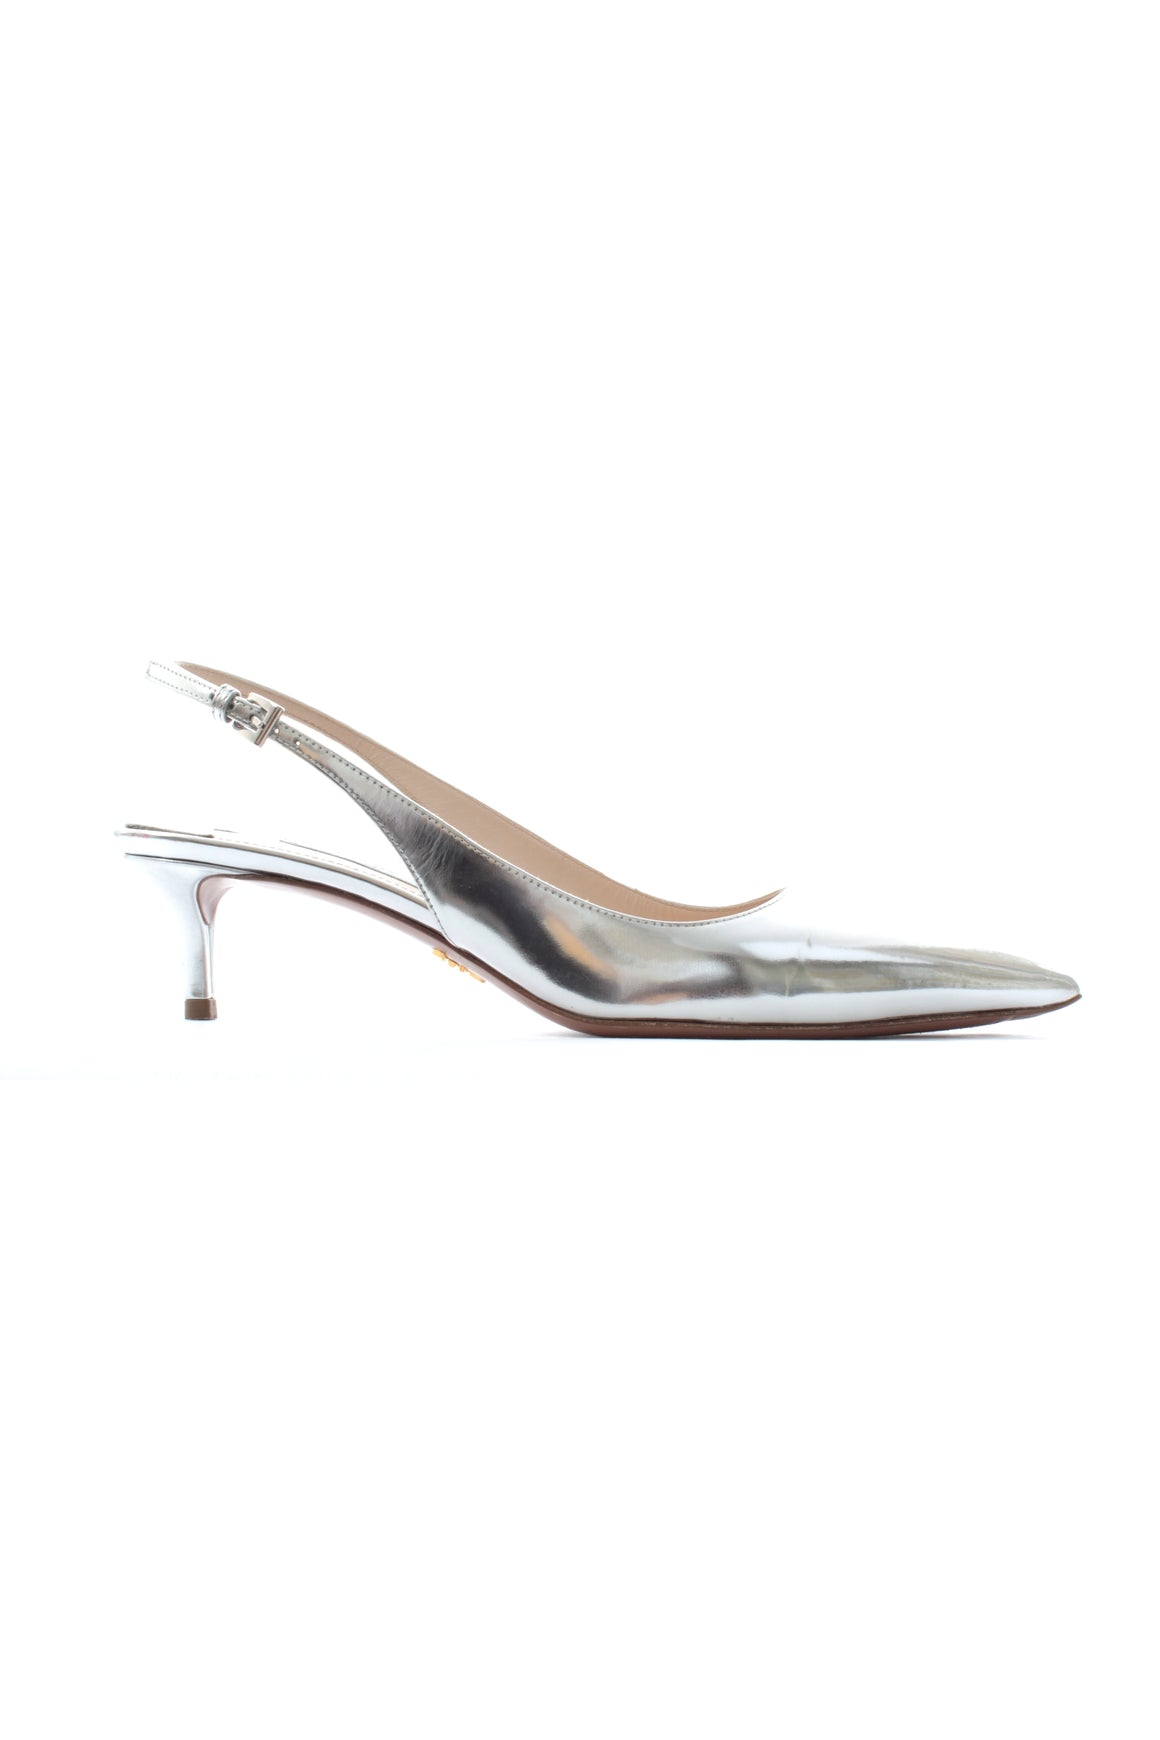 Prada Metallic Pointed Slingback Pumps